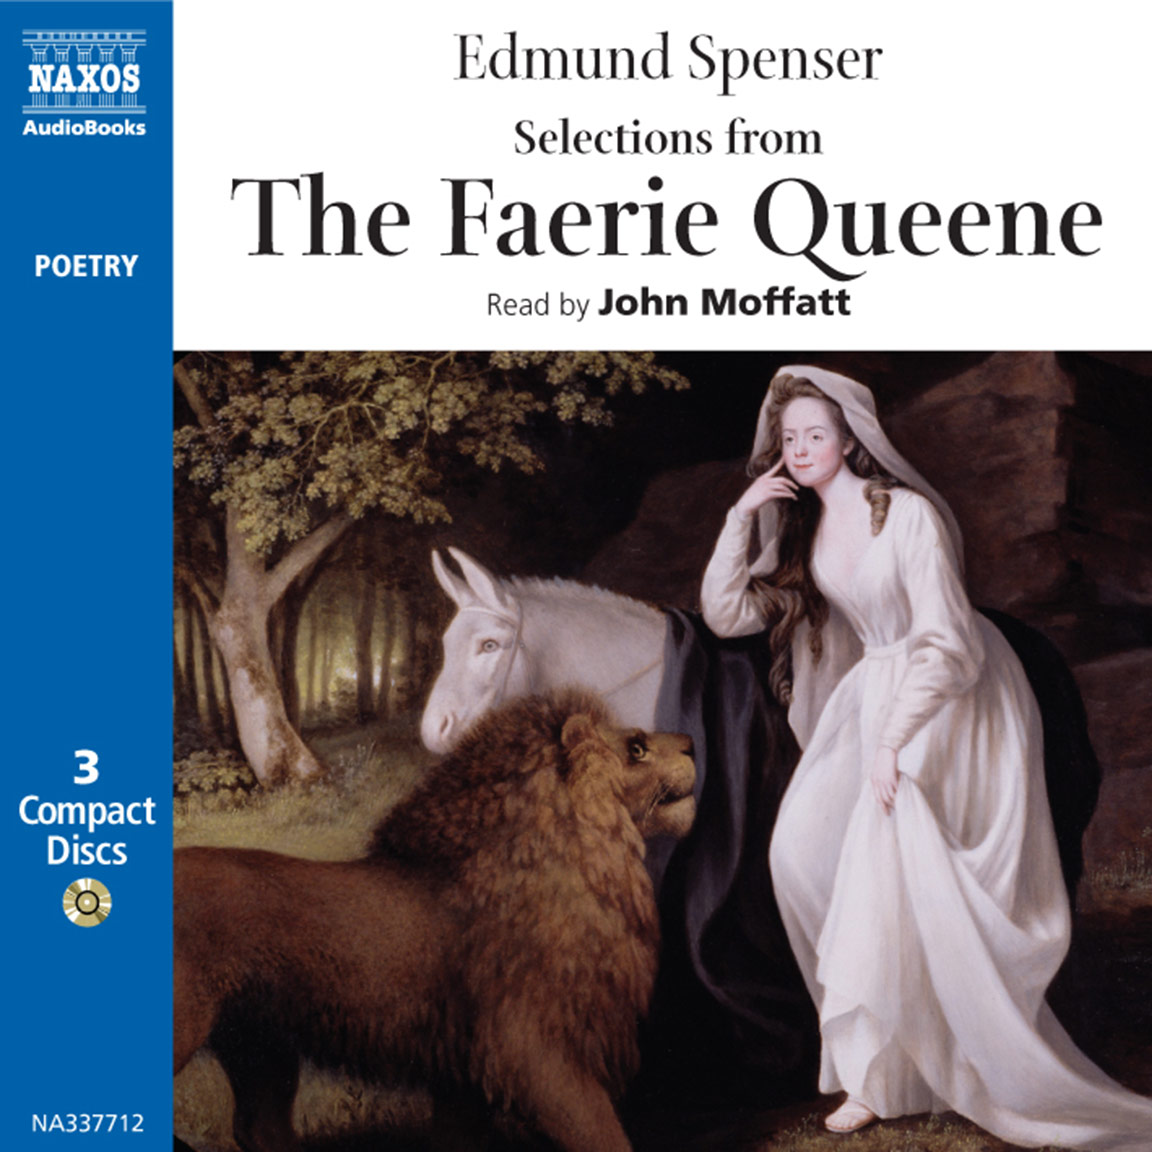 essay questions for the faerie queene